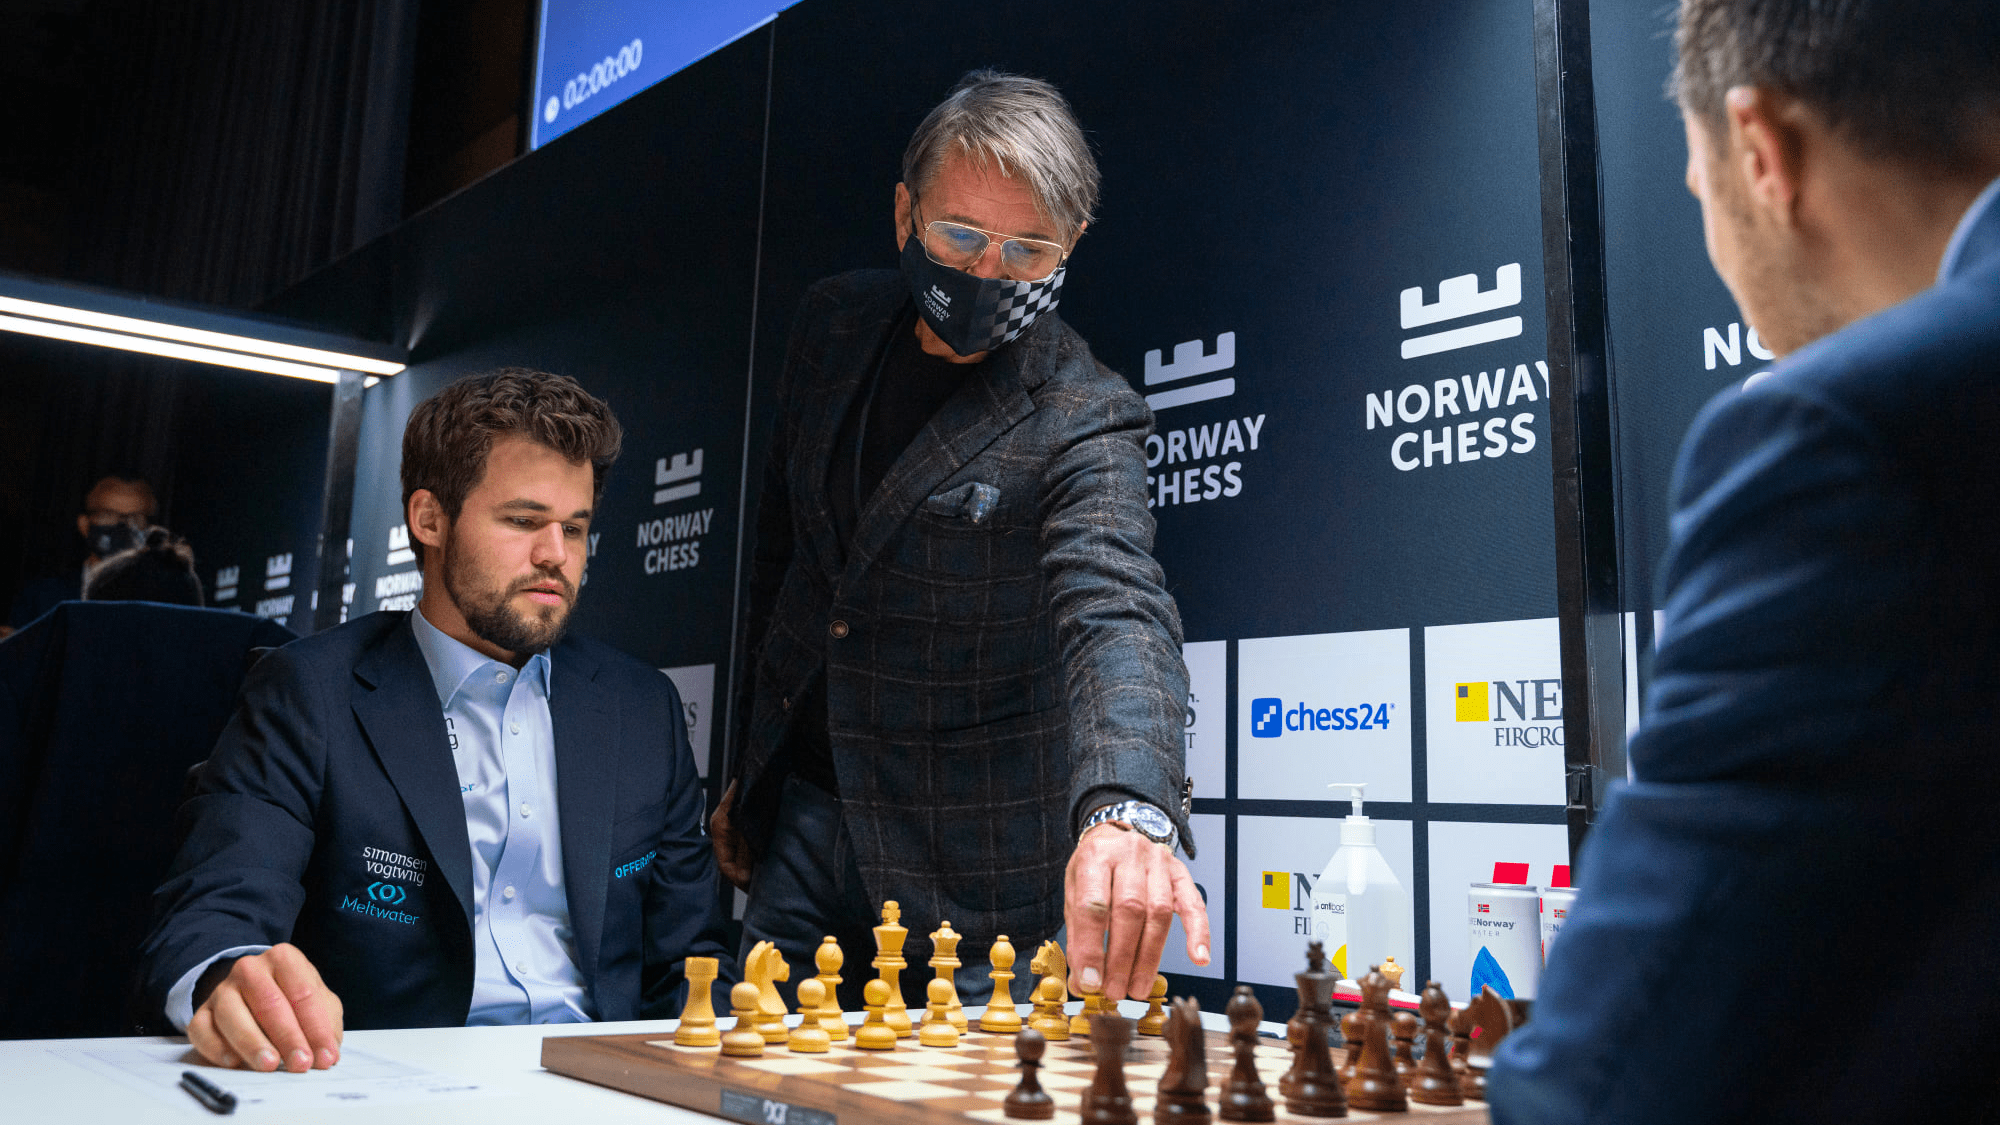 Norway Chess R9: Carlsen Leads After 4th Straight Win; Firouzja Enters World's Top 10